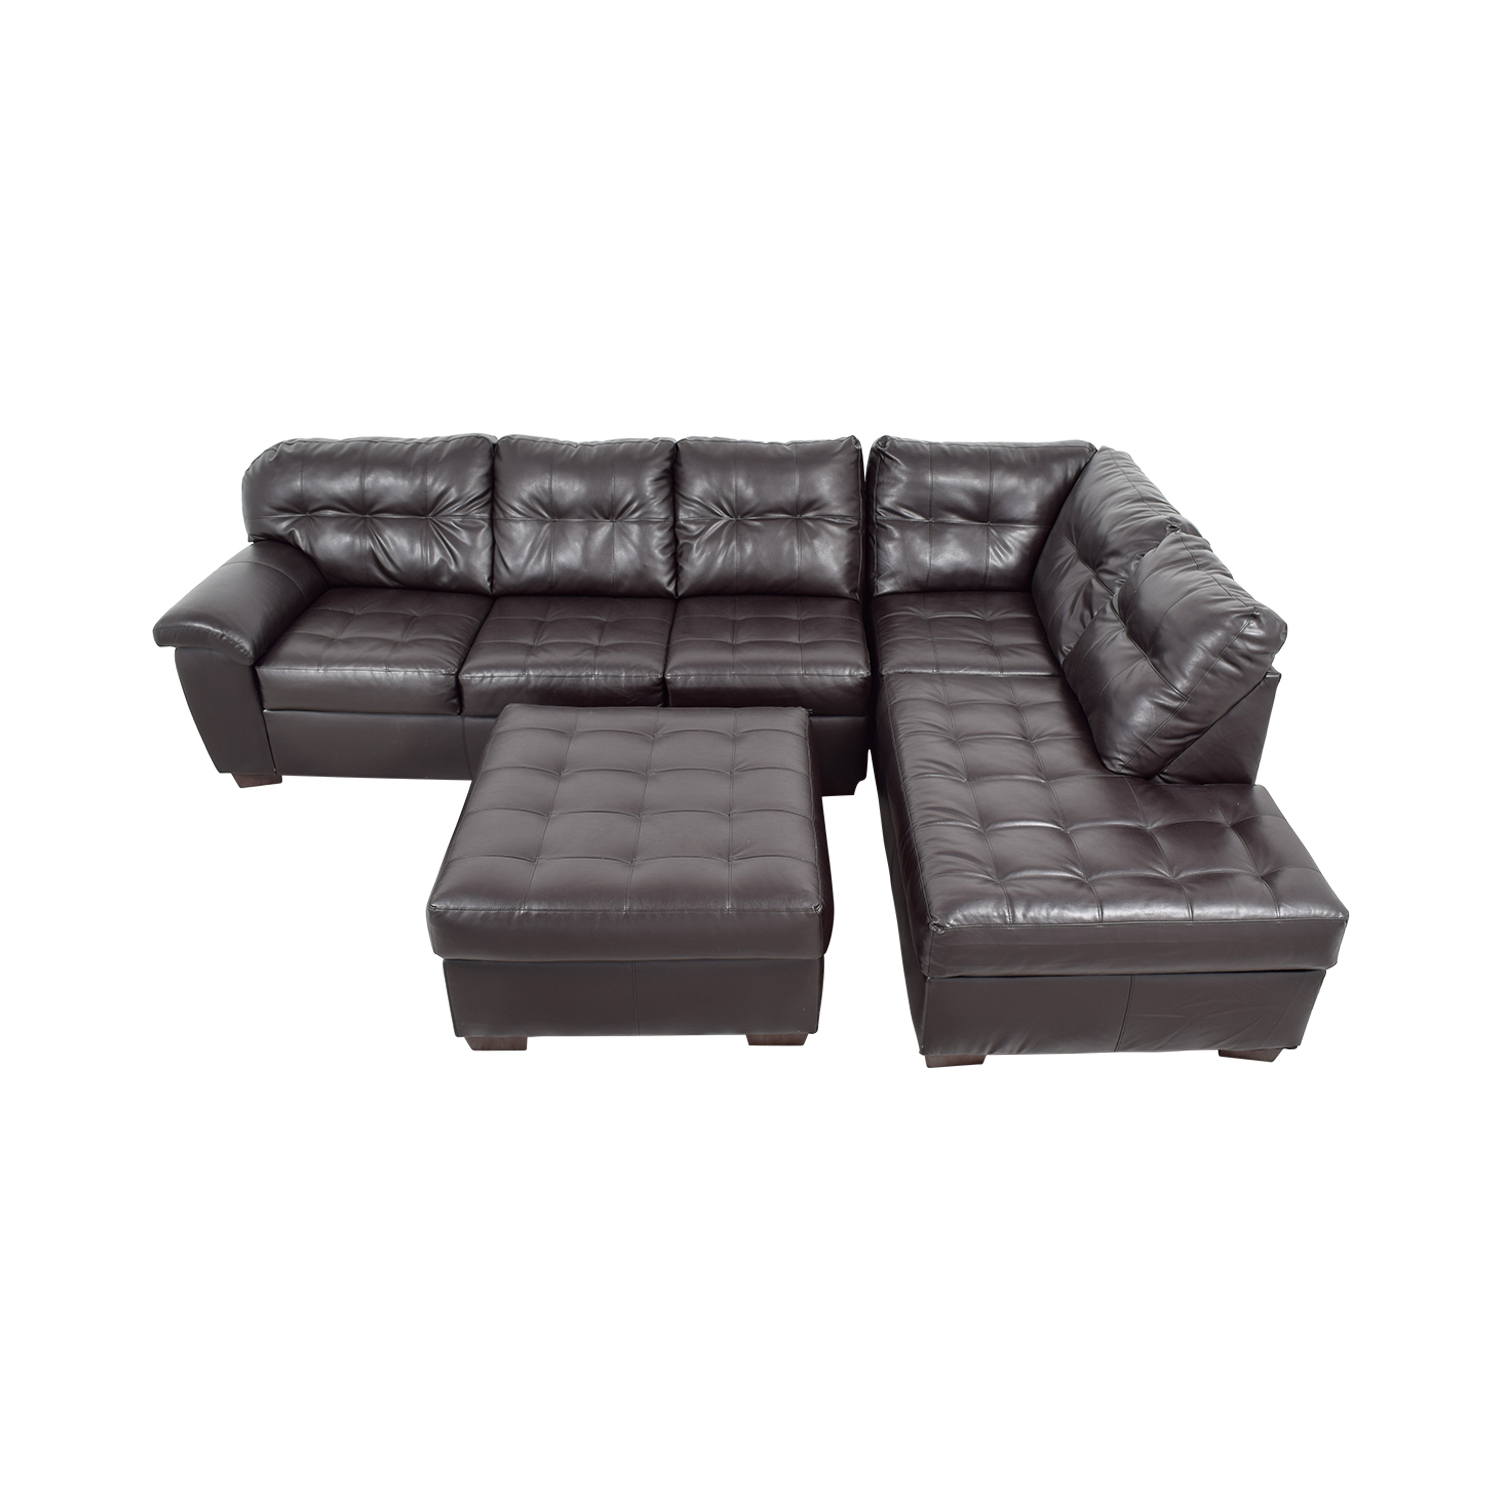 Simmons Simmons Brown Leather Sectional with Ottoman discount